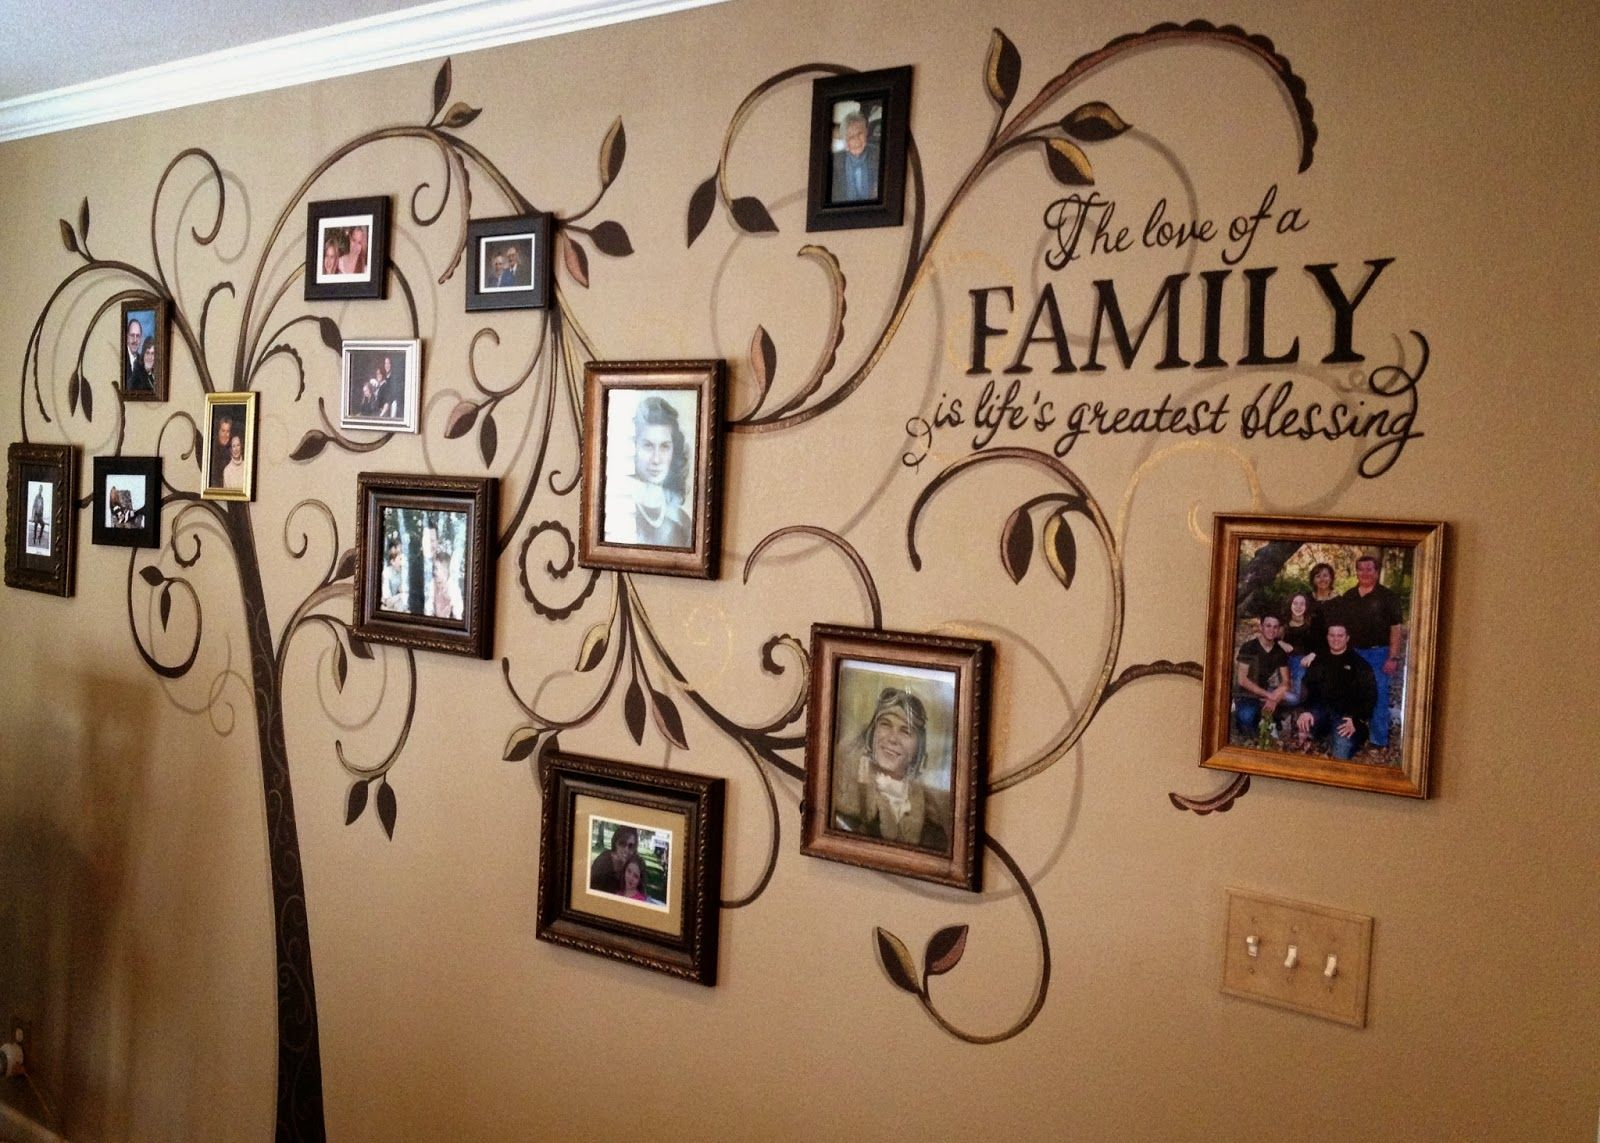 Family Tree Design Ideas family tree craft template ideas_20 30 Family Picture Frame Wall Ideas